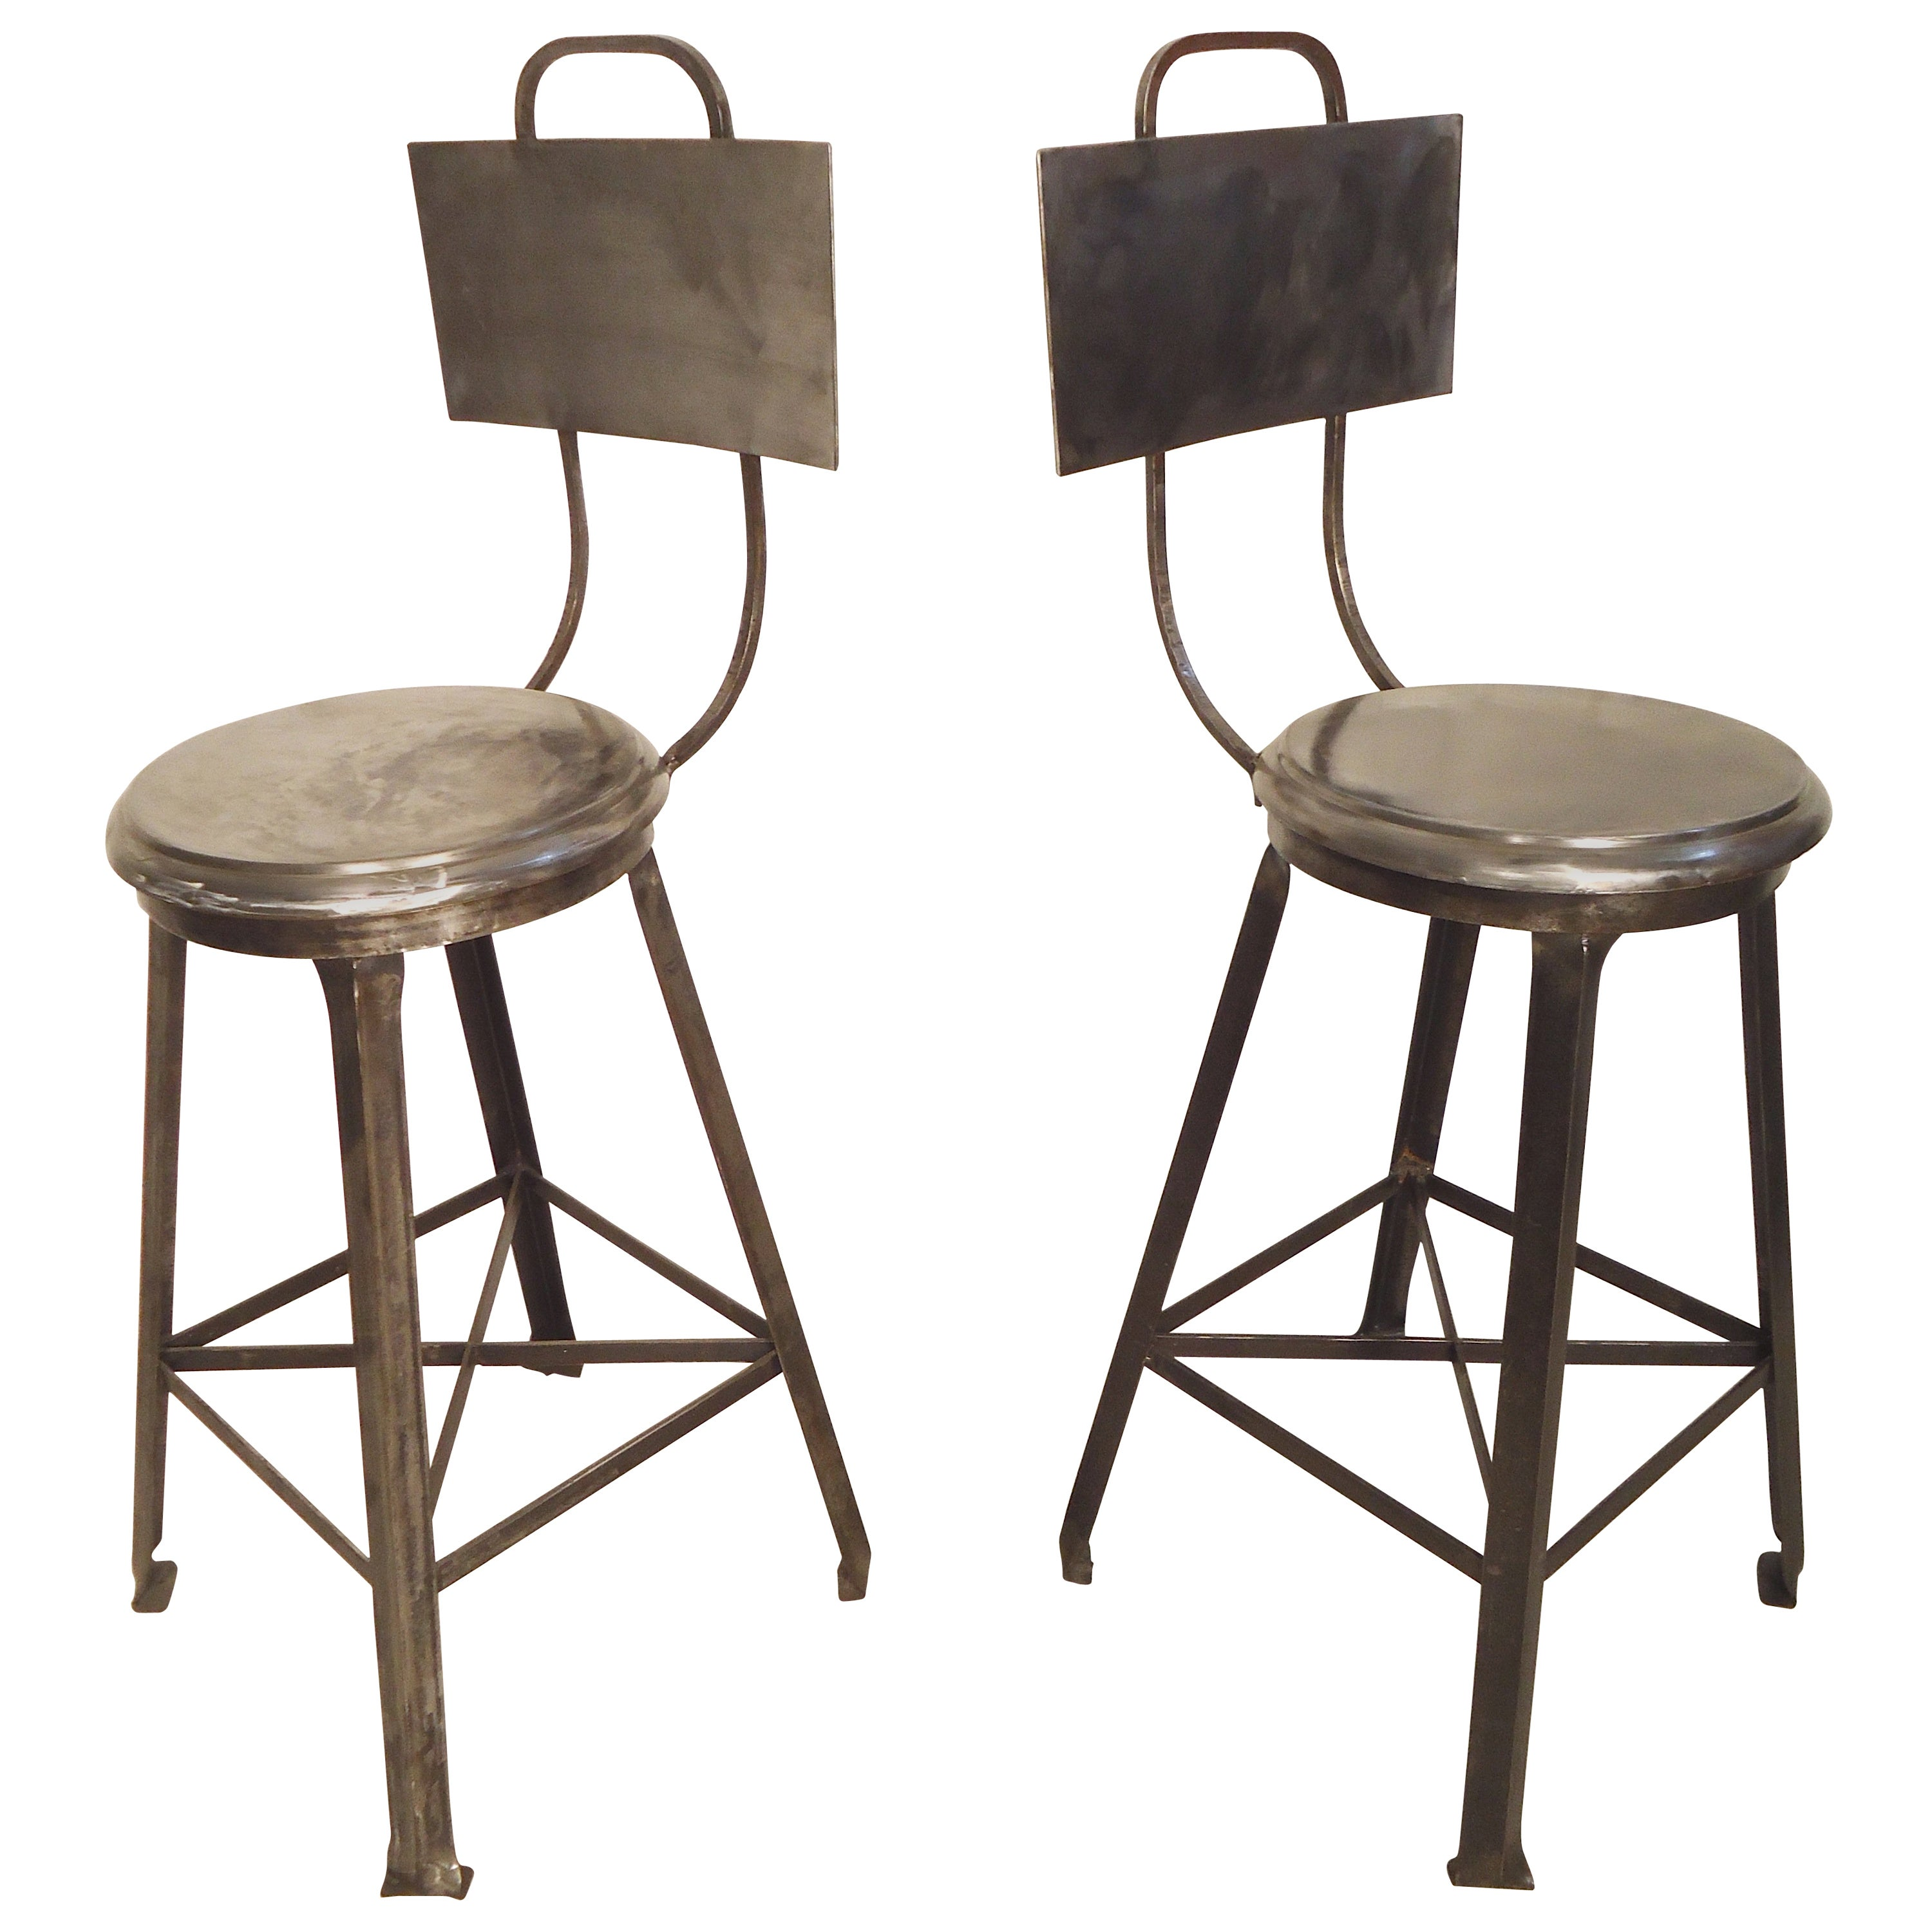 Metal Stools Heavy Industrial Style Bar Stools